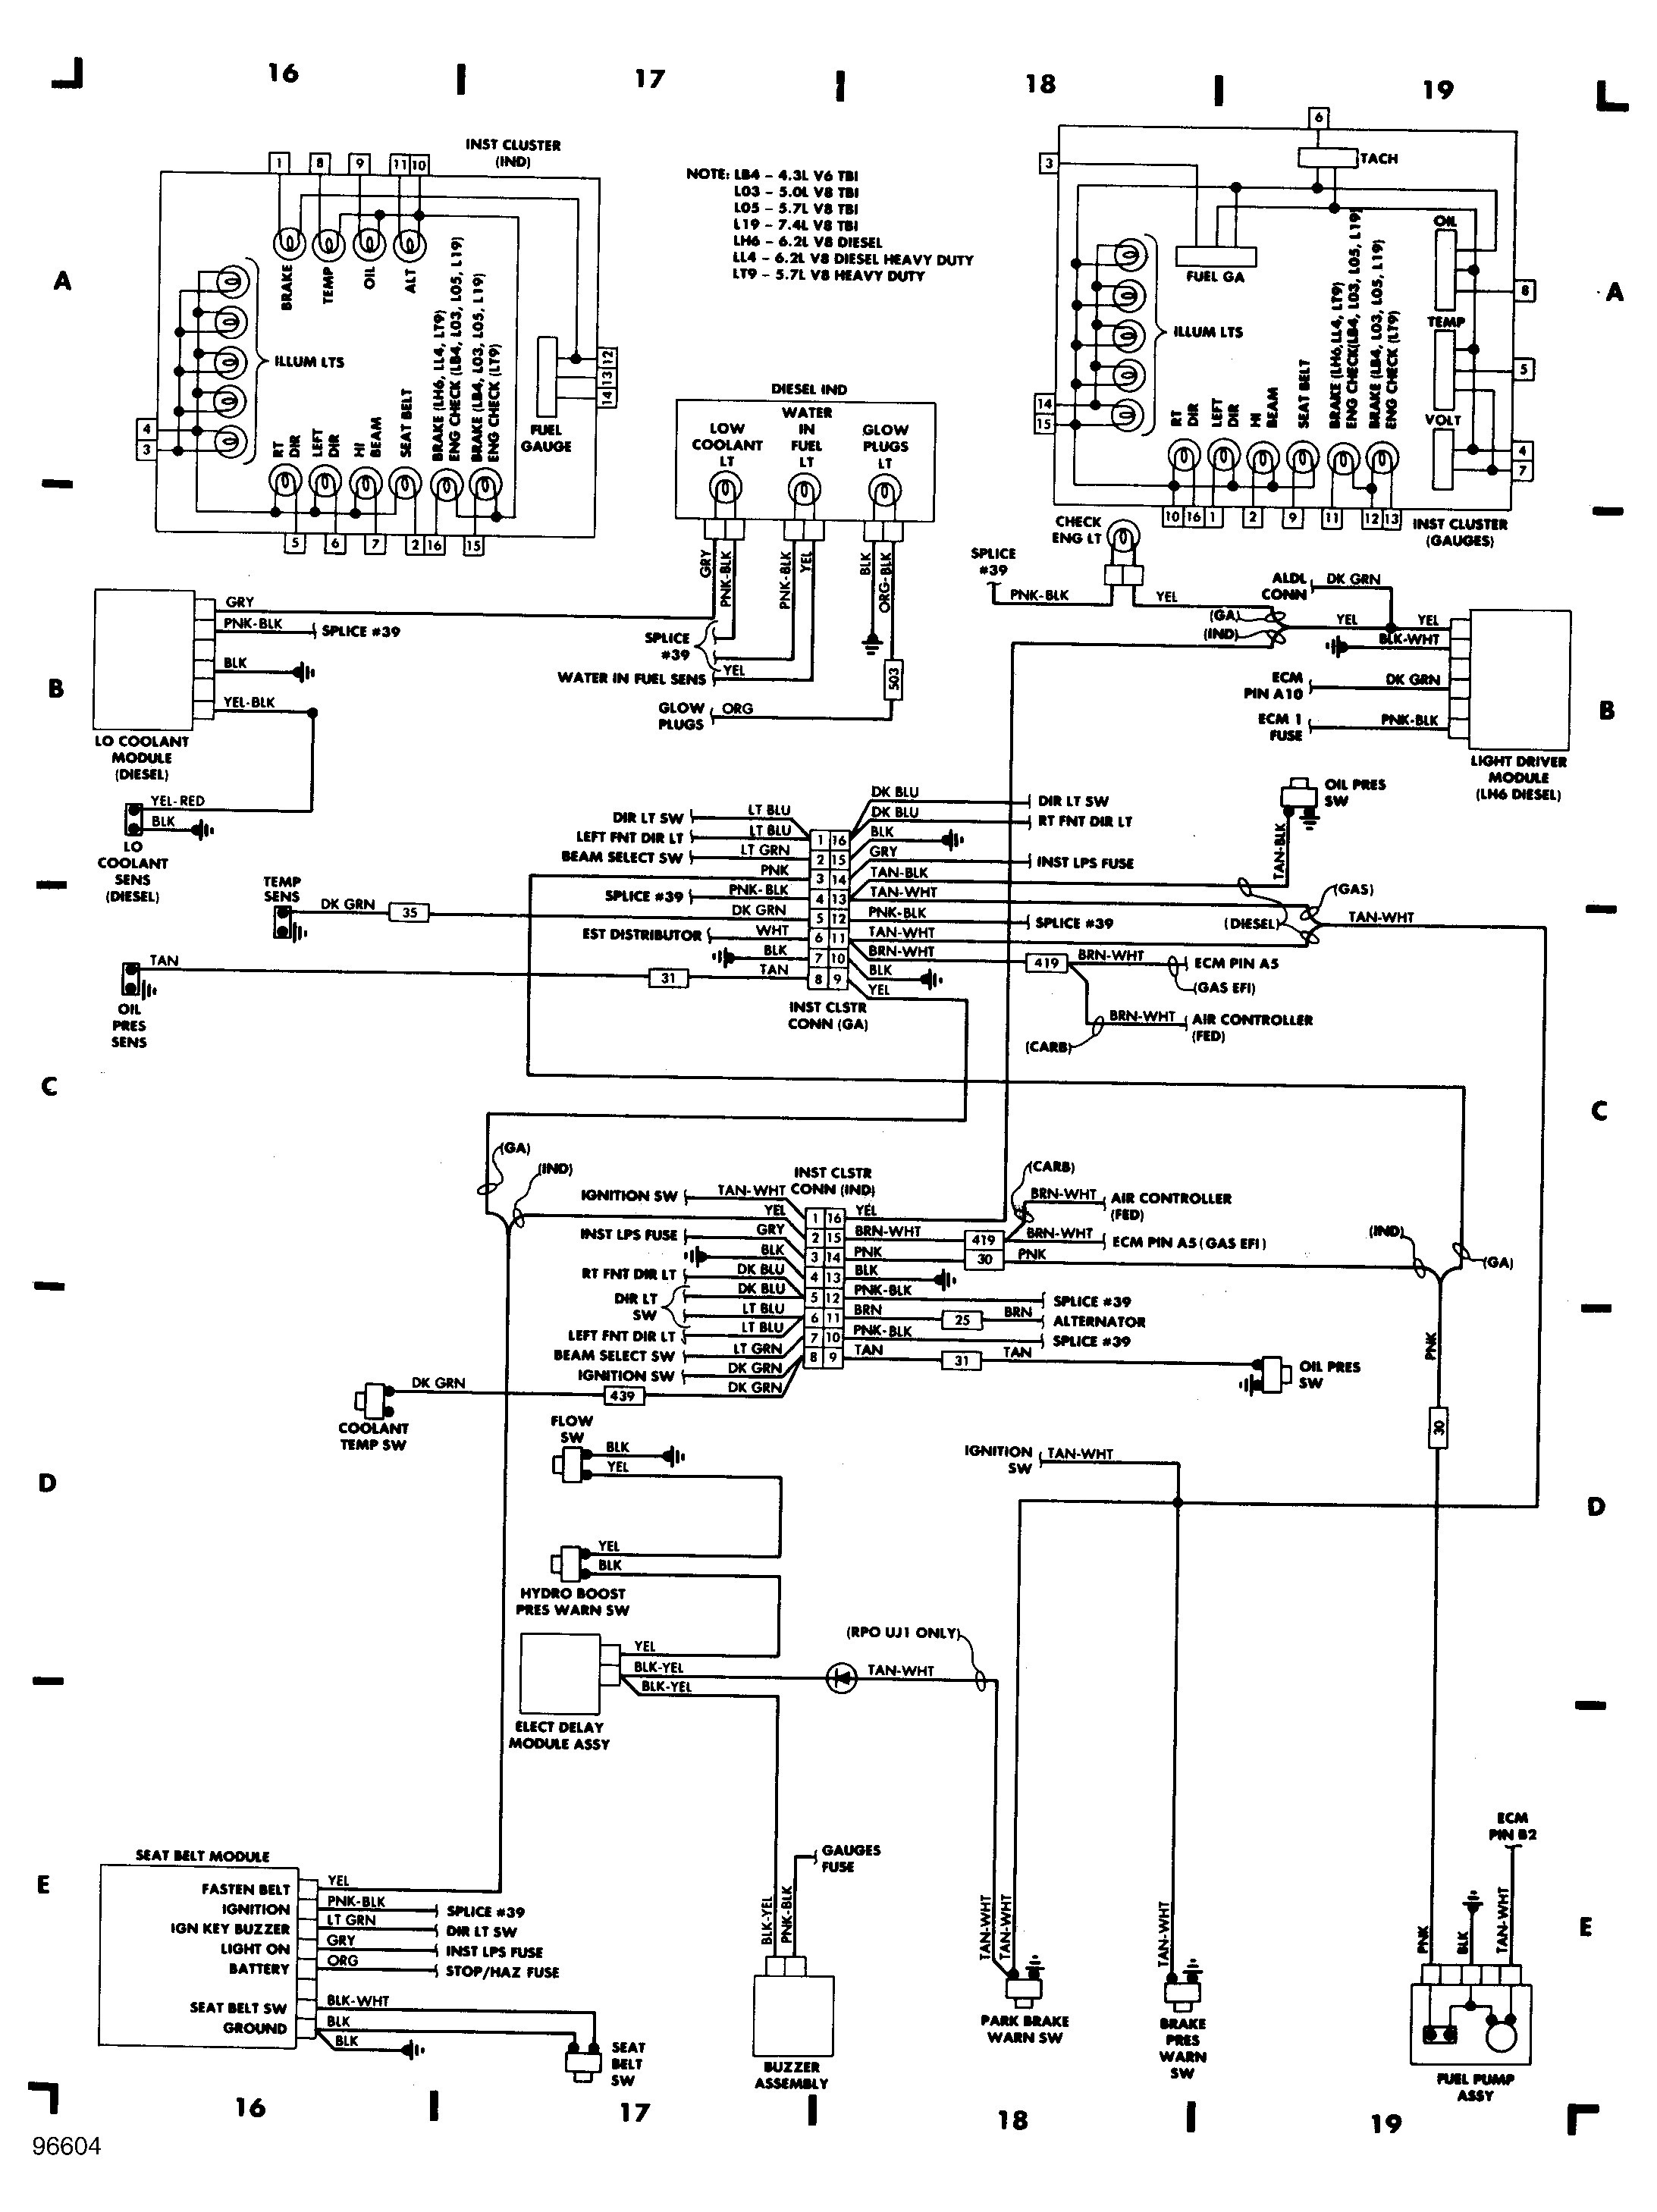 Car Wiring Harness Diagram Awesome 5 7 Vortec Wiring Harness Diagram Diagram Of Car Wiring Harness Diagram